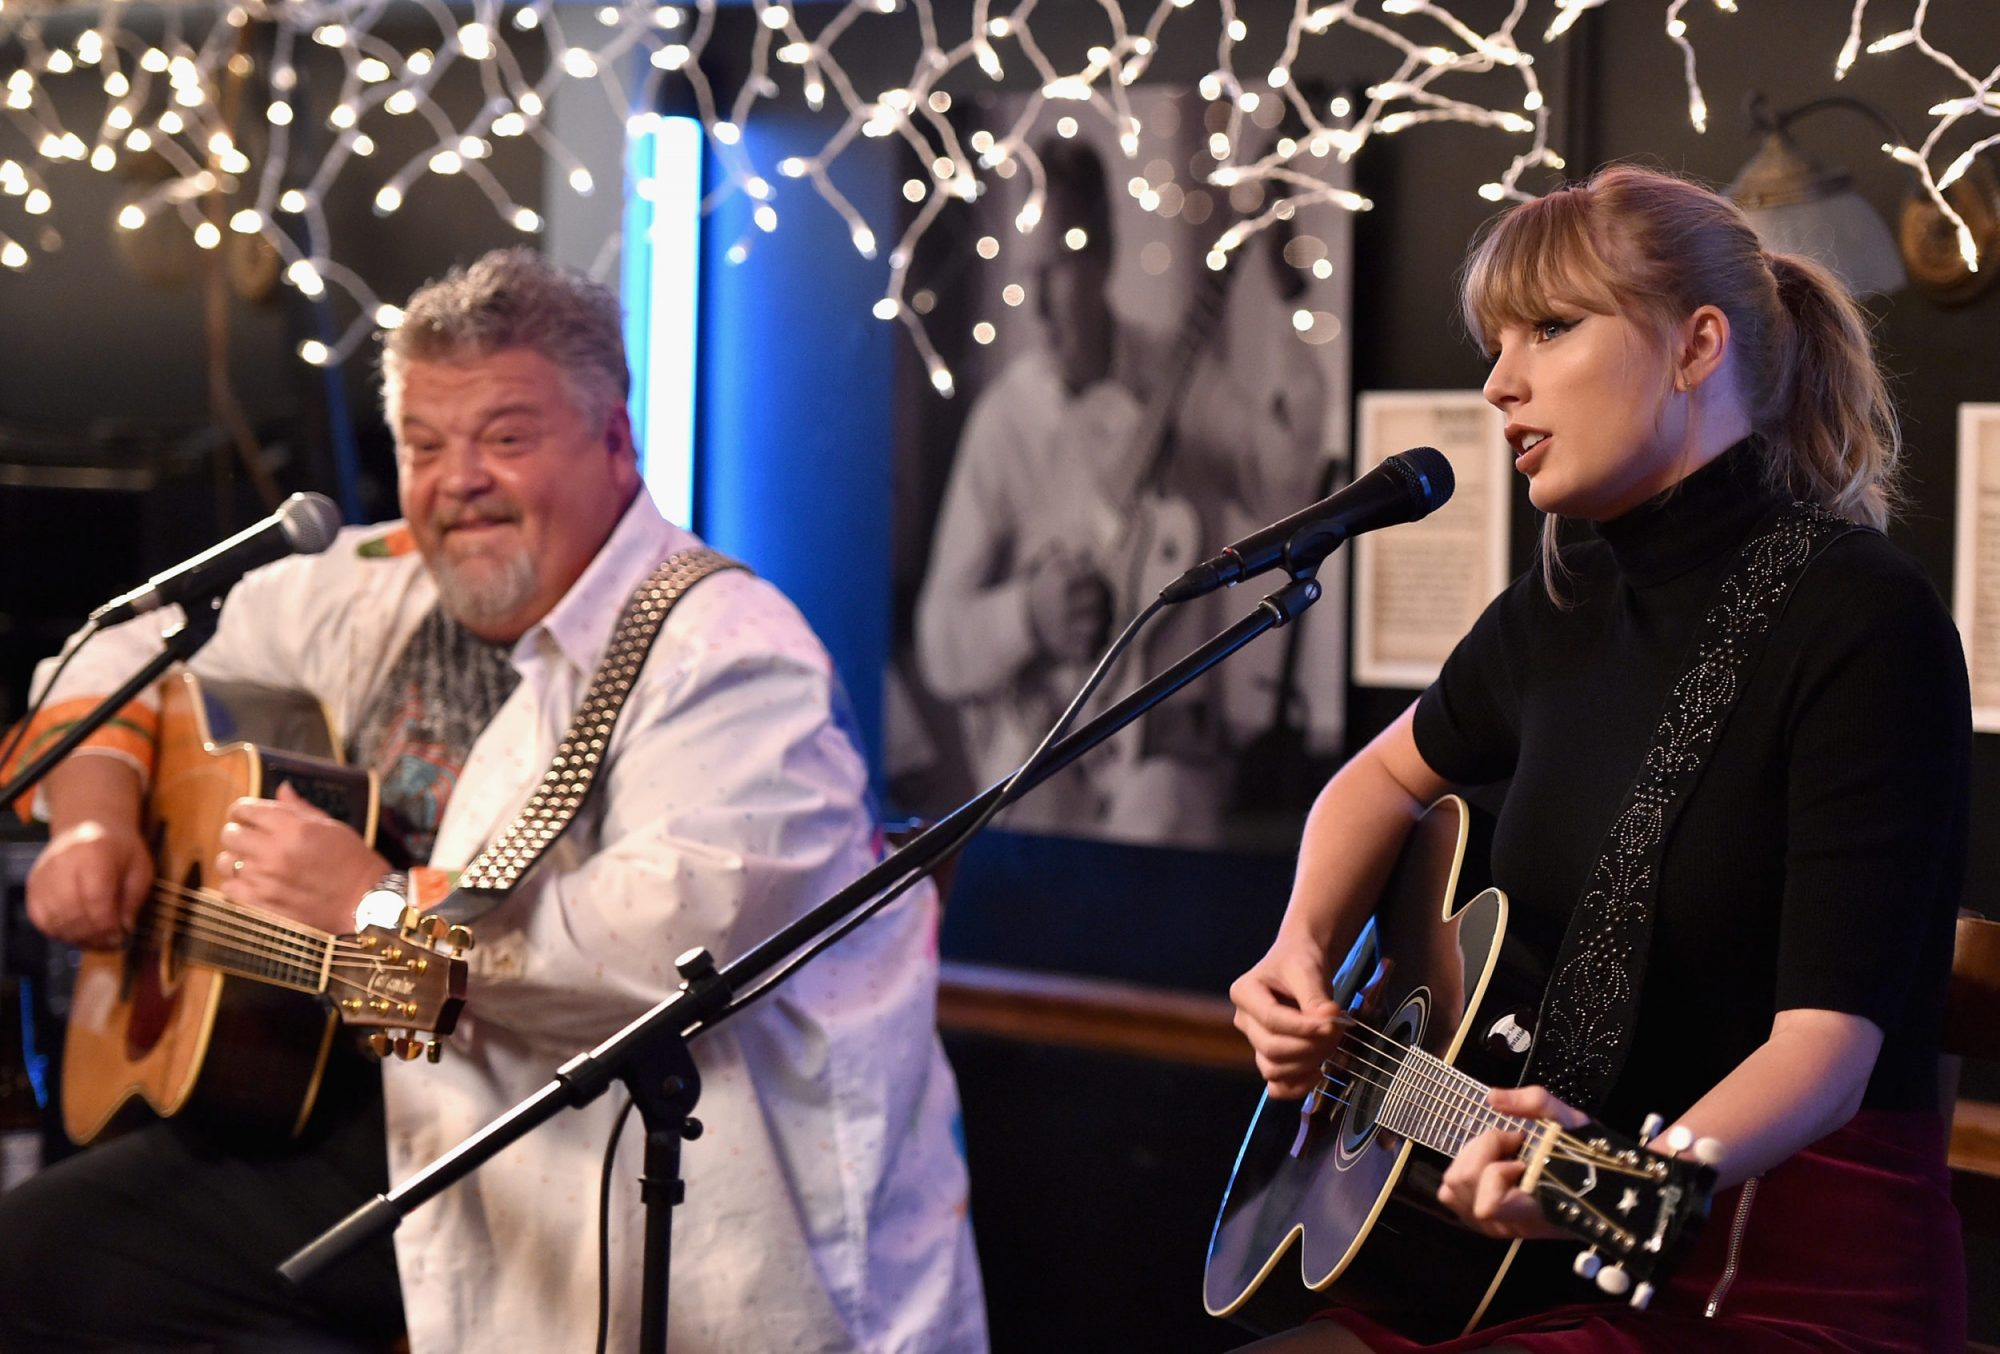 Photo of Taylor Swift at Bluebird Cafe in Nashville